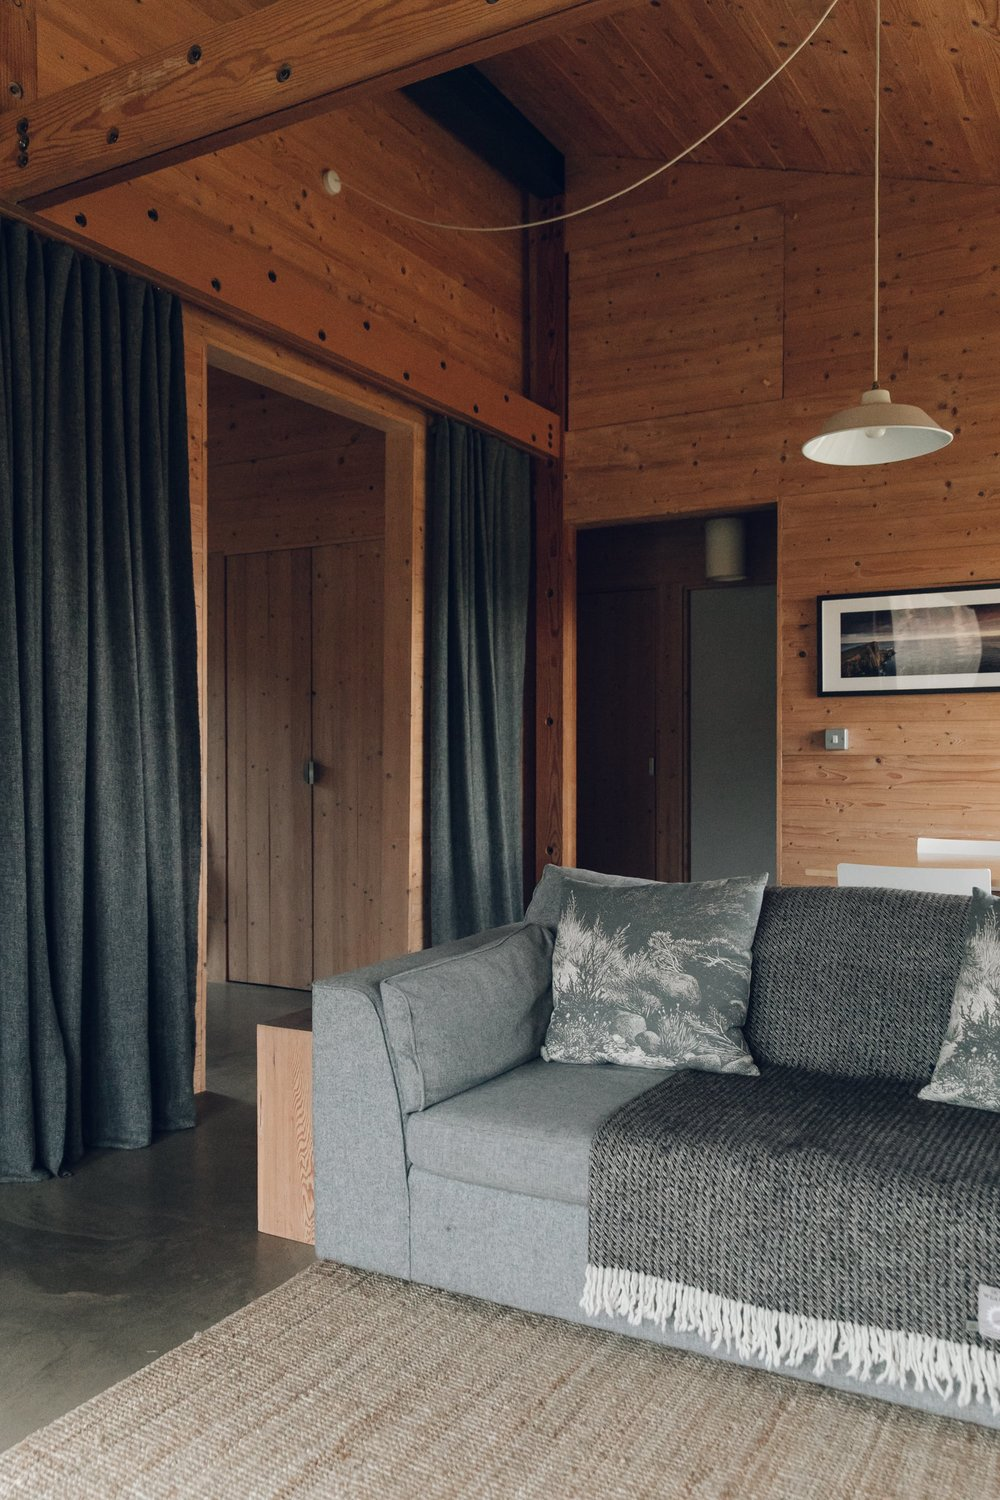 The Black Shed self-catering holiday home on the Isle of Skye, Scotland by Haarkon